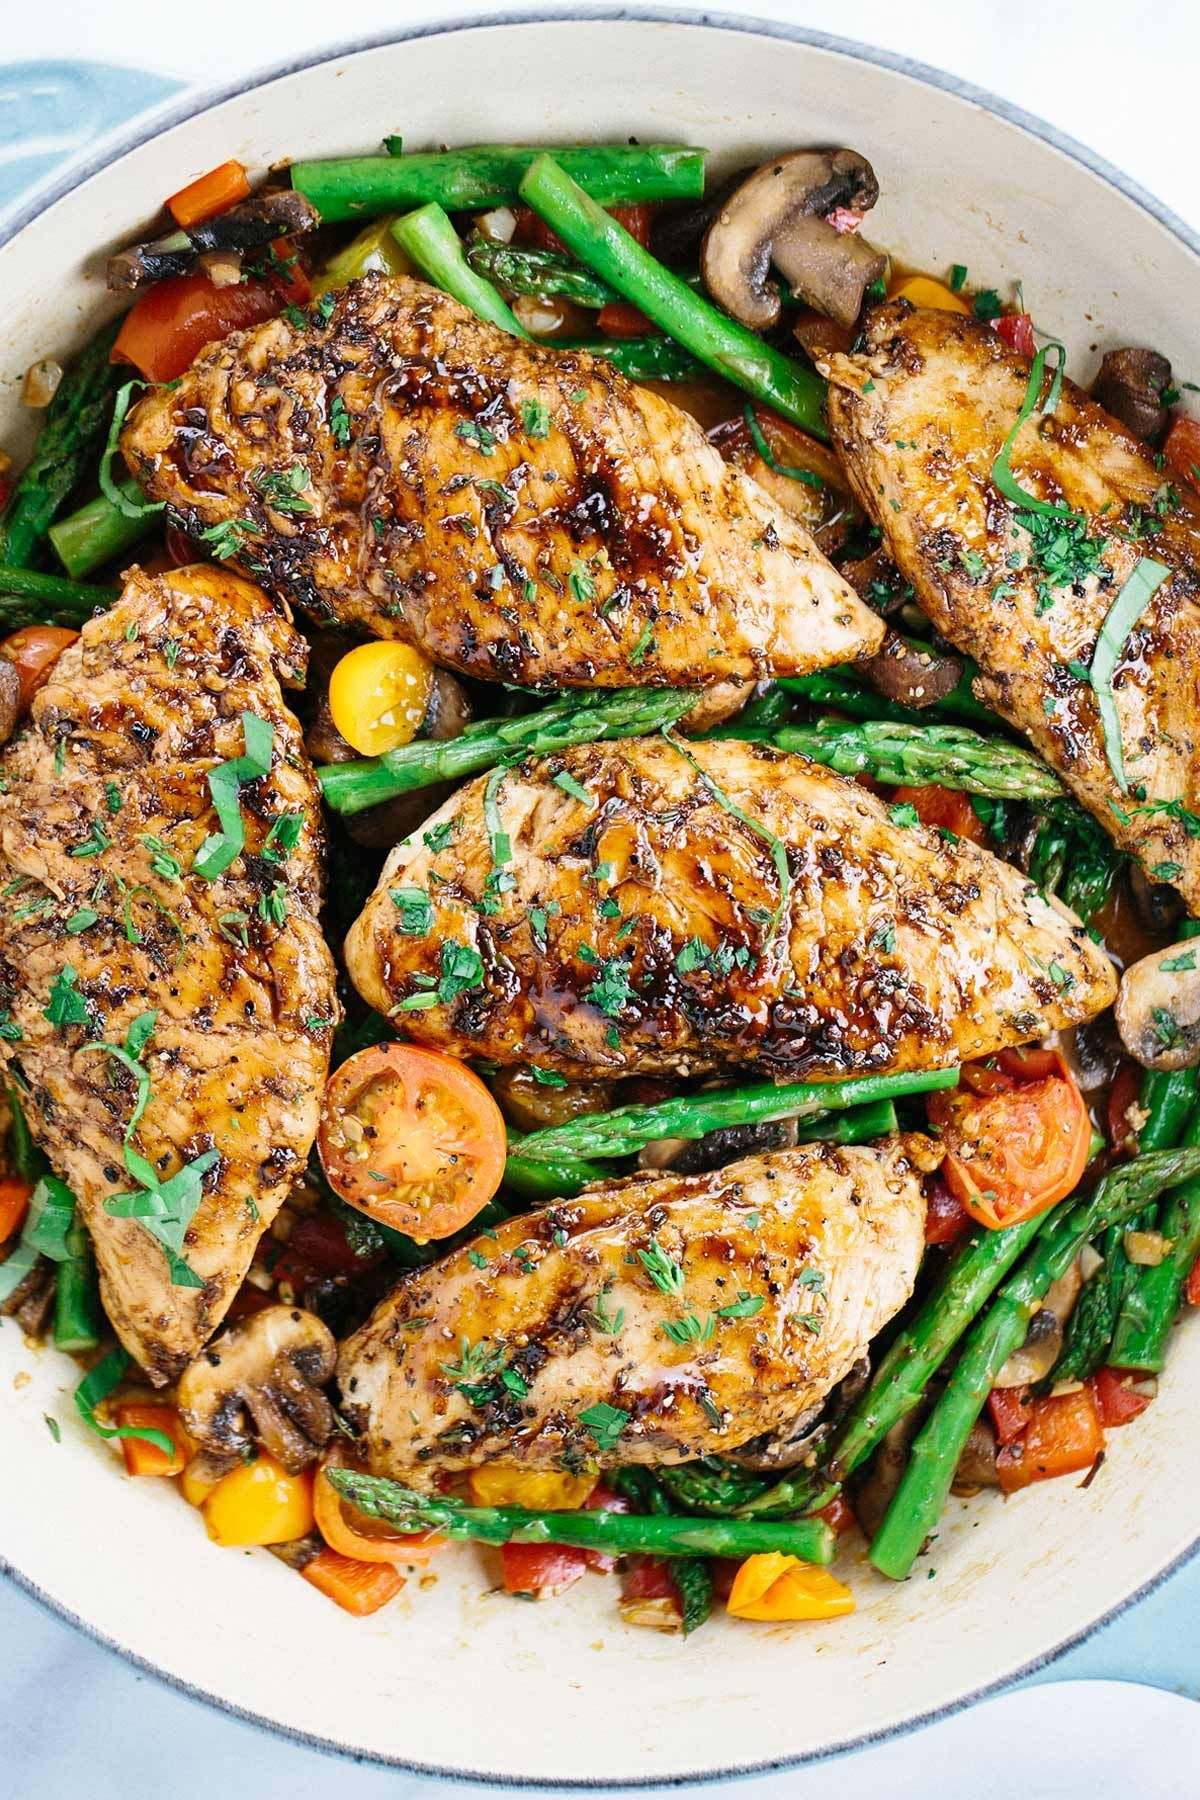 Balsamic chicken with vegetables recipe pins i love images